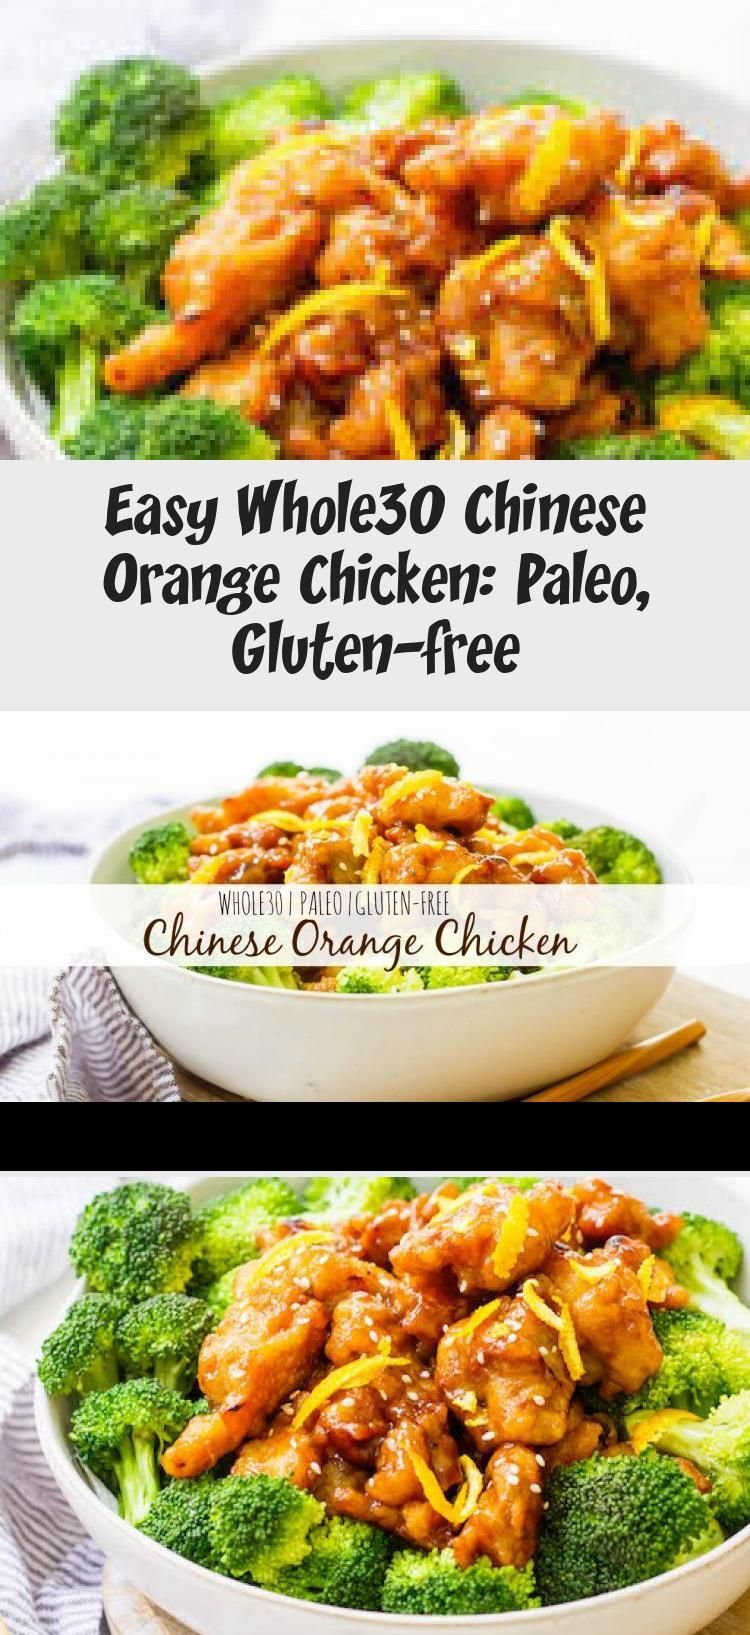 This easy Whole30 Chinese orange chicken is the best takeout fake-out ever. Sometimes you just need some orange chicken in your life, and this version is much healthier and there's no delivery fee! It's also a Paleo orange chicken recipe, which makes it gluten free and made from real ingredients, so you can skip the MSG! #whole30orangechicken #paleoorangechicken #whole30chickenrecipes #Casserolerecipe #Cheesecakerecipe #Pizzarecipe #CleanEatingrecipe #Healthyrecipe #chineseorangechicken This eas #chineseorangechicken